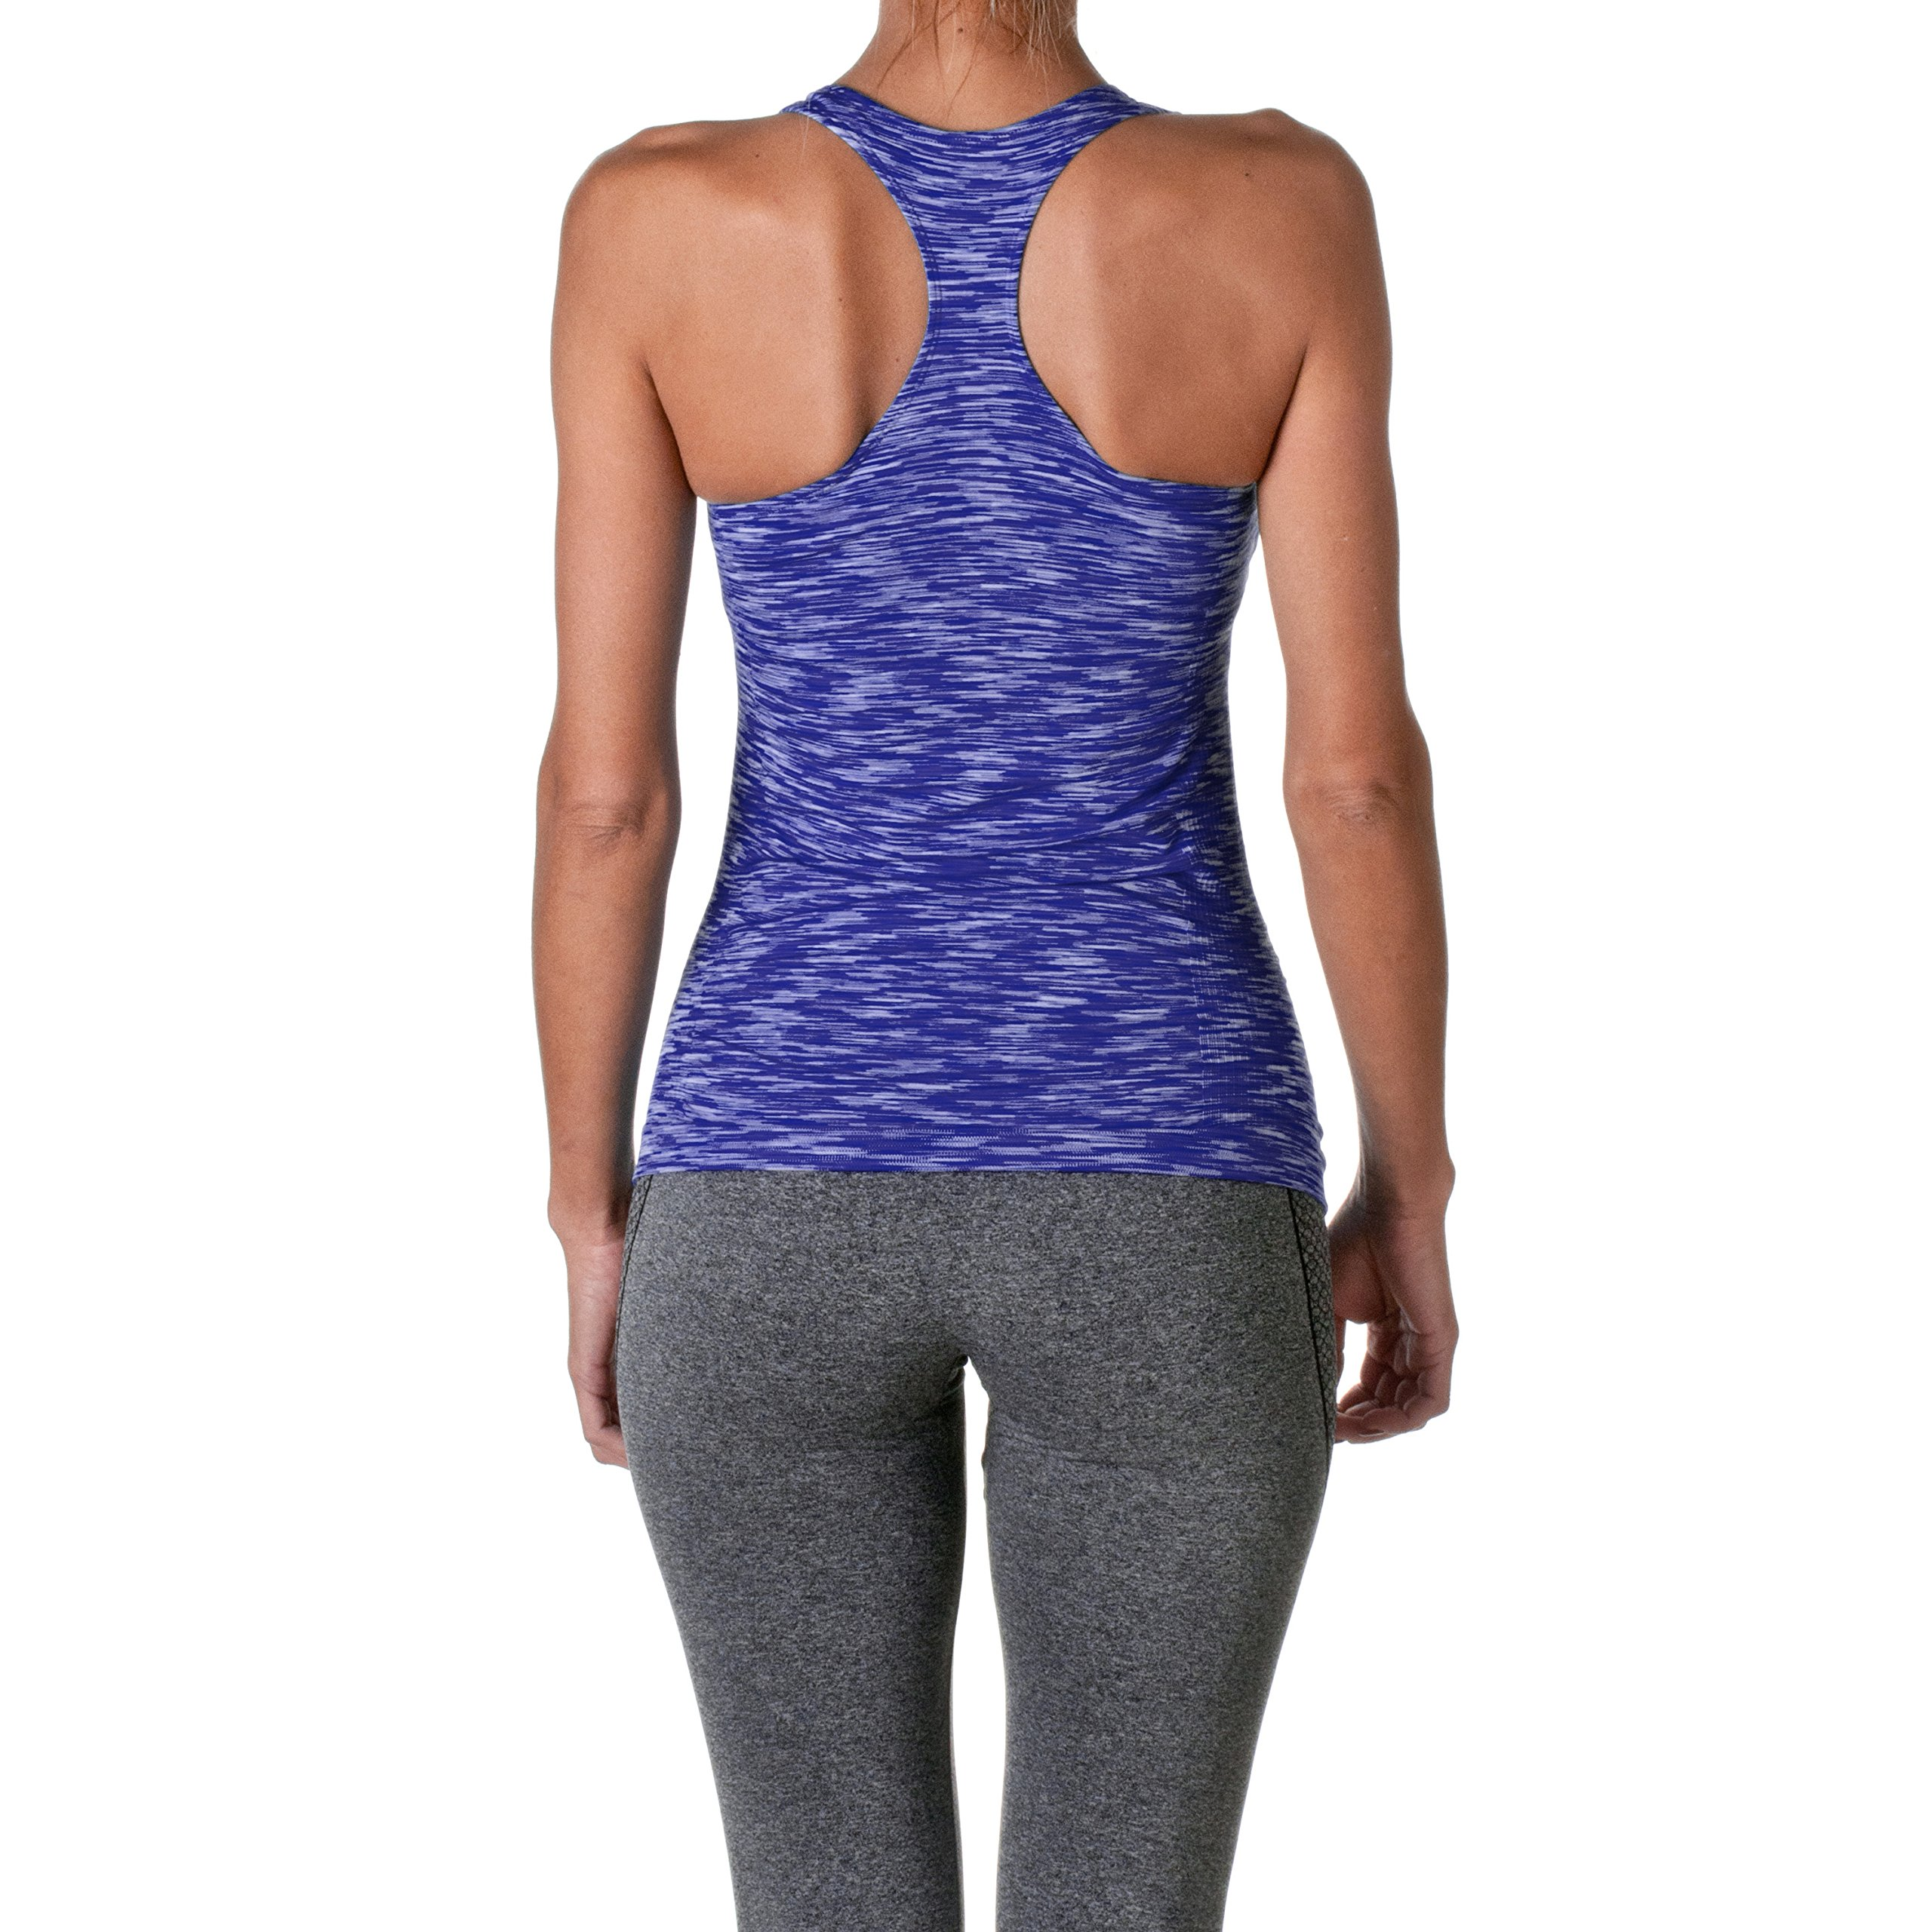 Galleon Riverberry Womens Actives Racerback Yoga Workout